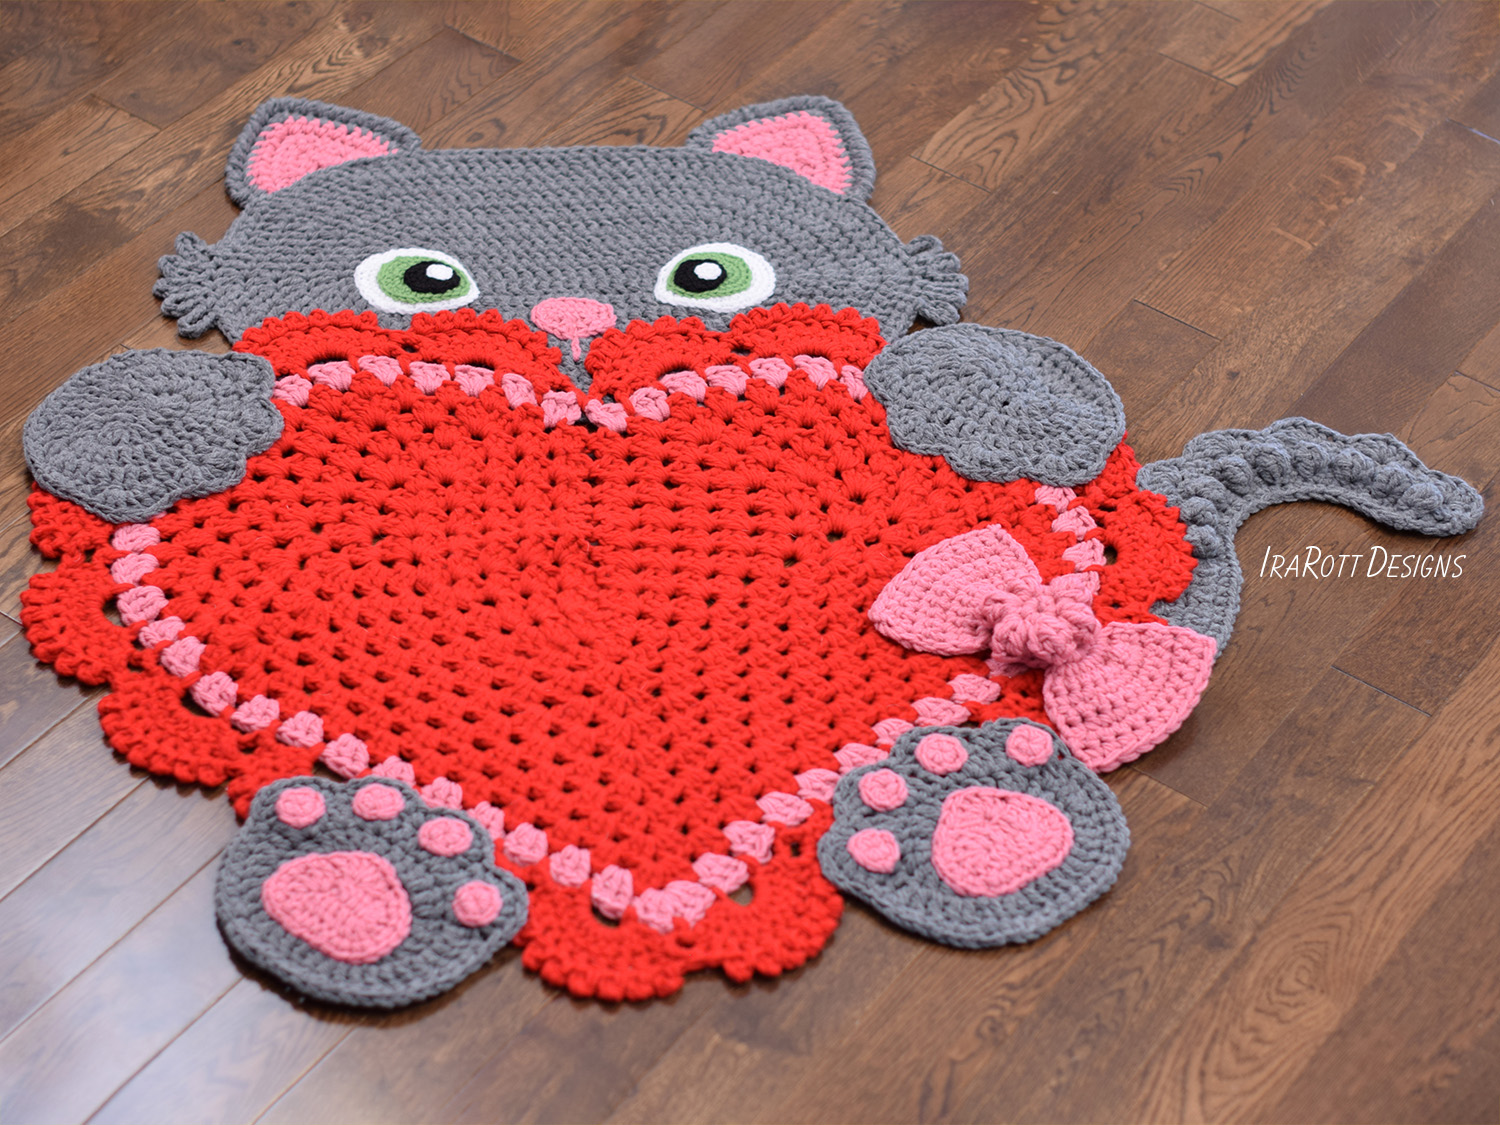 Crochet Granny Square Rug Patterns : Sassy the Kitty Cat Heart Rug PDF Crochet Pattern ...